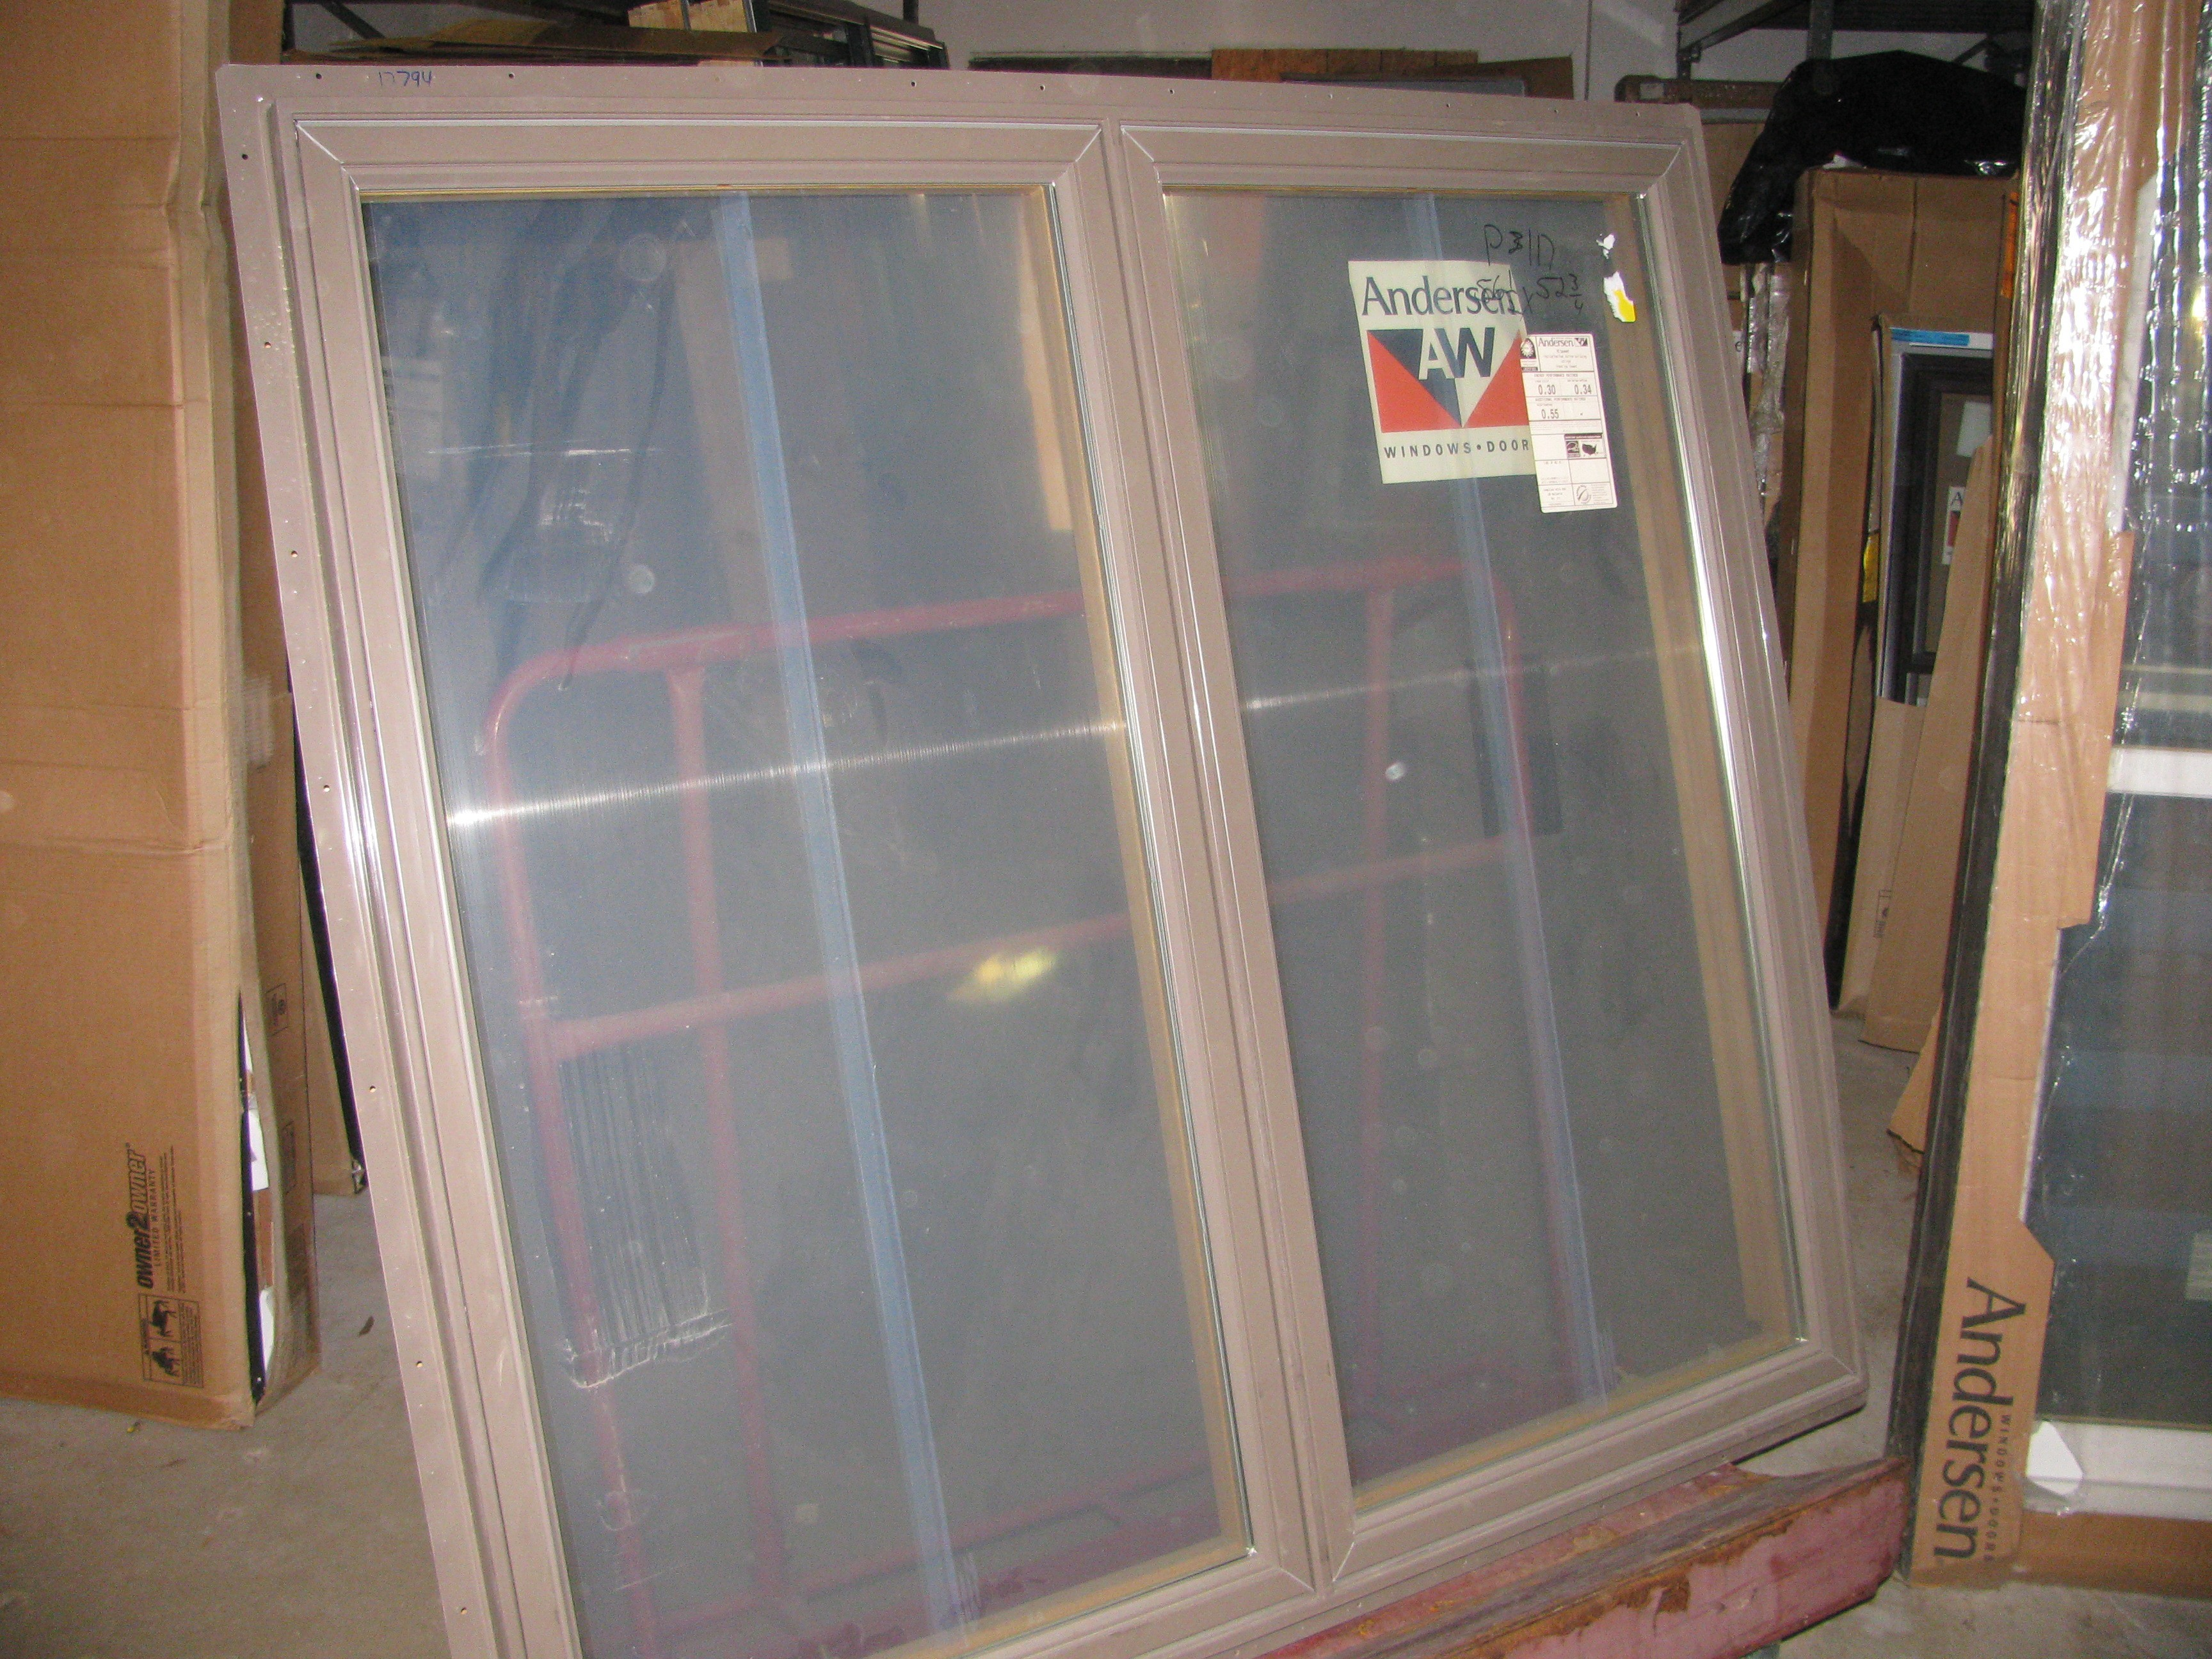 7 new andersen terratone double casement windows400 series for Andersen 400 series casement